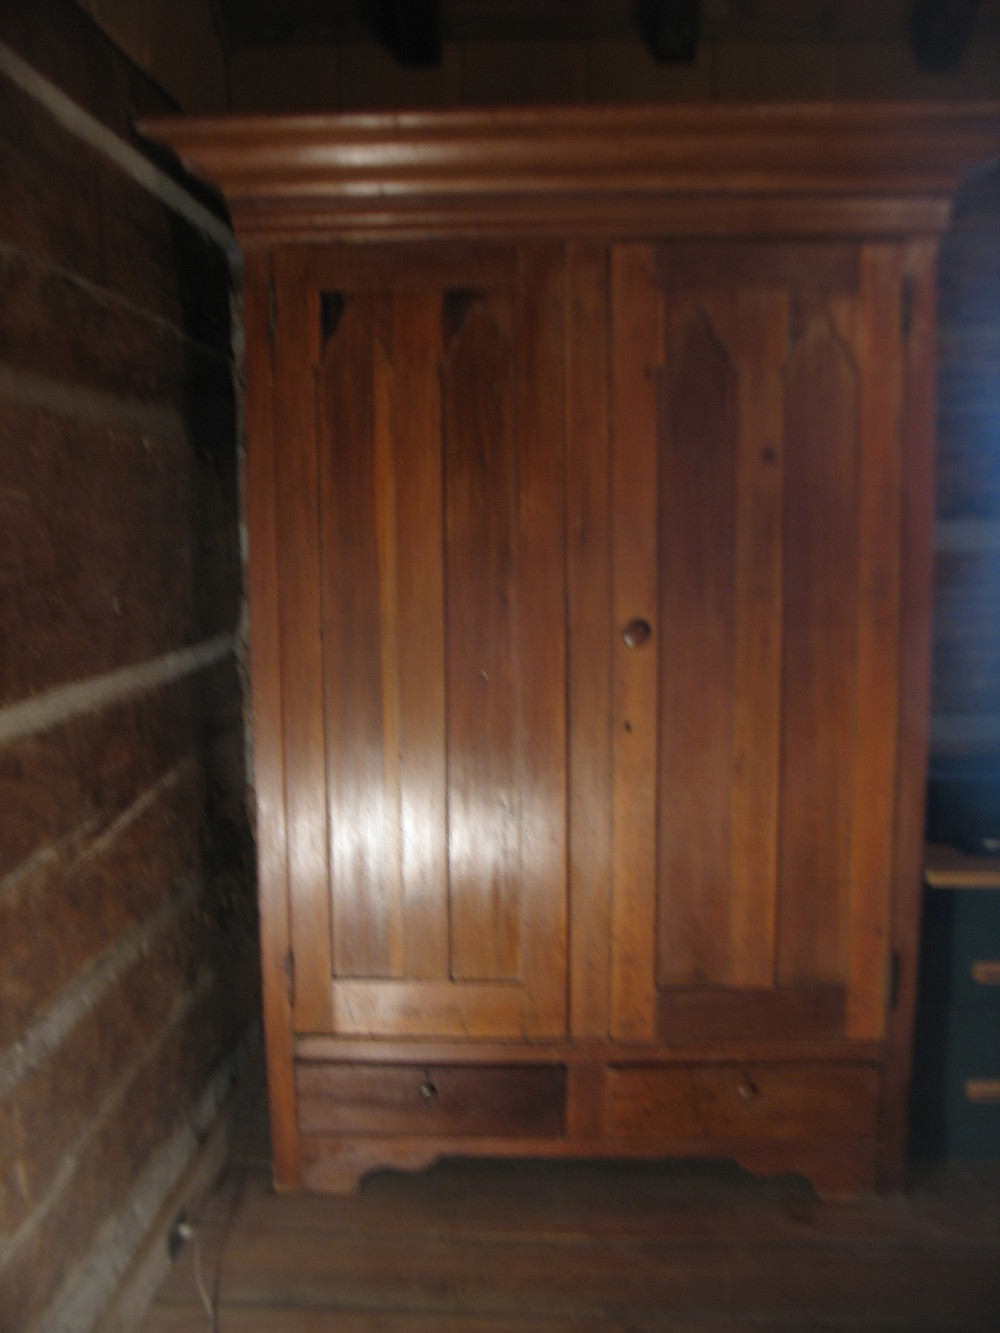 "This is a very special wardrobe, hand made in walnut, pegged together and has the largest crown molding seen for a wardrobe of this period.  Overall Height  7' 3"" X 54 inches wide for the body of the wardrobe.  The crown is 5' 8"" wide X 10 inches deep X 31"" from back to front.  There are 2 deep drawers at the bottom  each 23 inches wide X 21 inches deep. Inside is 2 feet deep and 6 feet in height. There is a 23 inch walnut shelf at the top.  All hardware is original to the piece.  This is truly the best of the best in wardrobes."